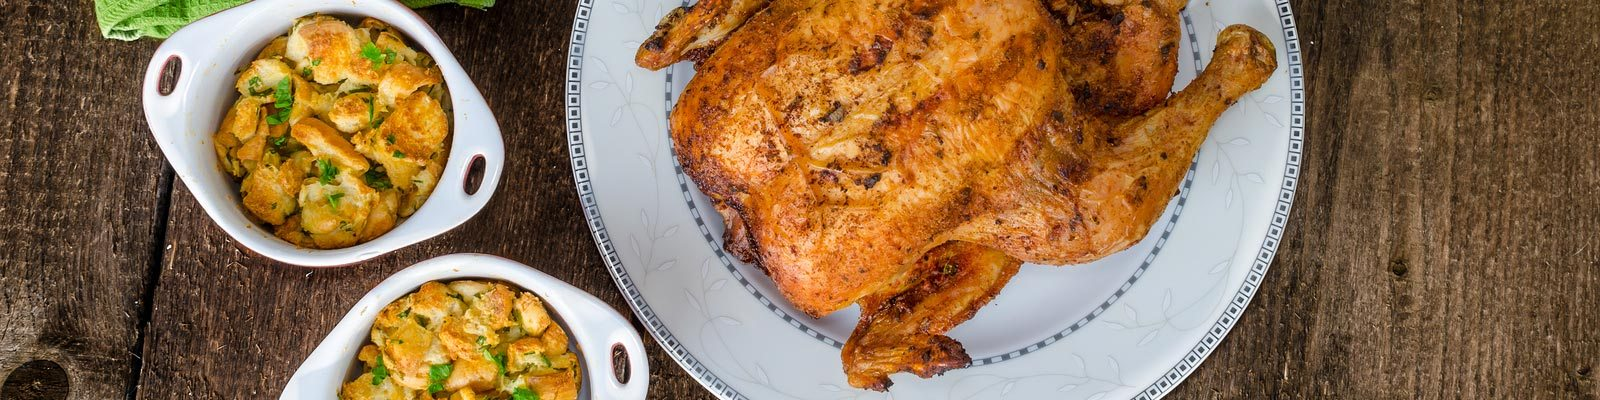 How To Use Our Grocery Store Rotisserie Chicken In More Delicious Ways